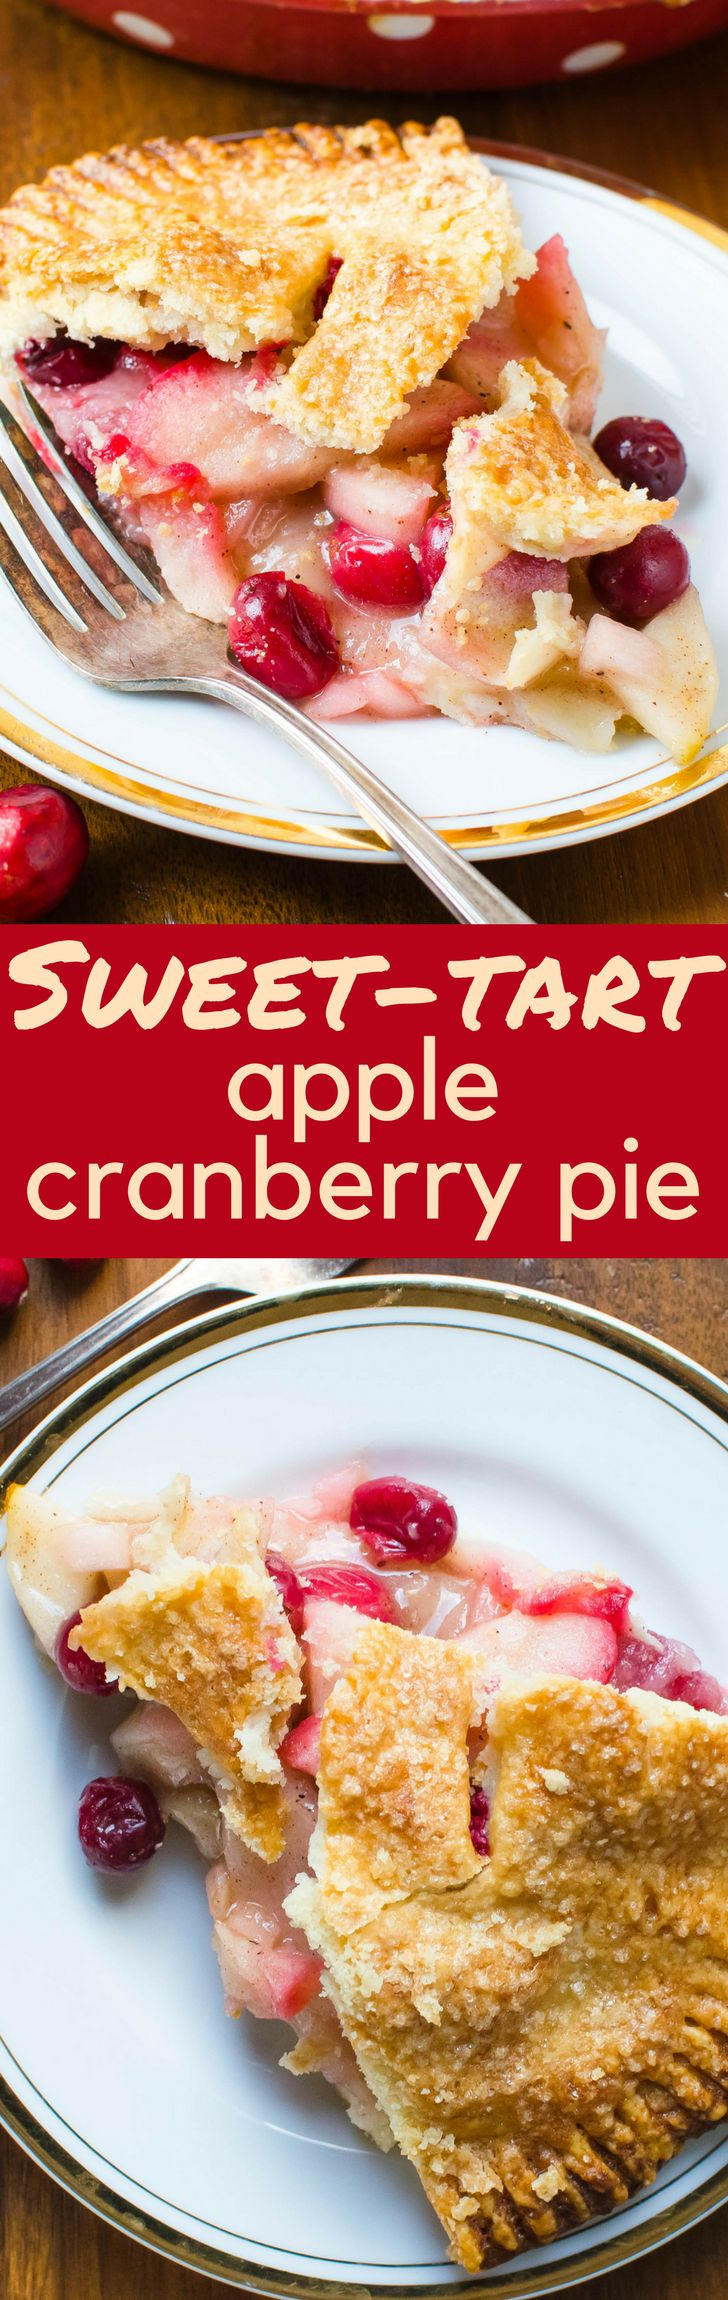 A simple apple pie recipe, this Sweet-Tart Apple Cranberry Pie is perfect for entertaining at the holidays.  Great for Thanksgiving or Christmas dessert!